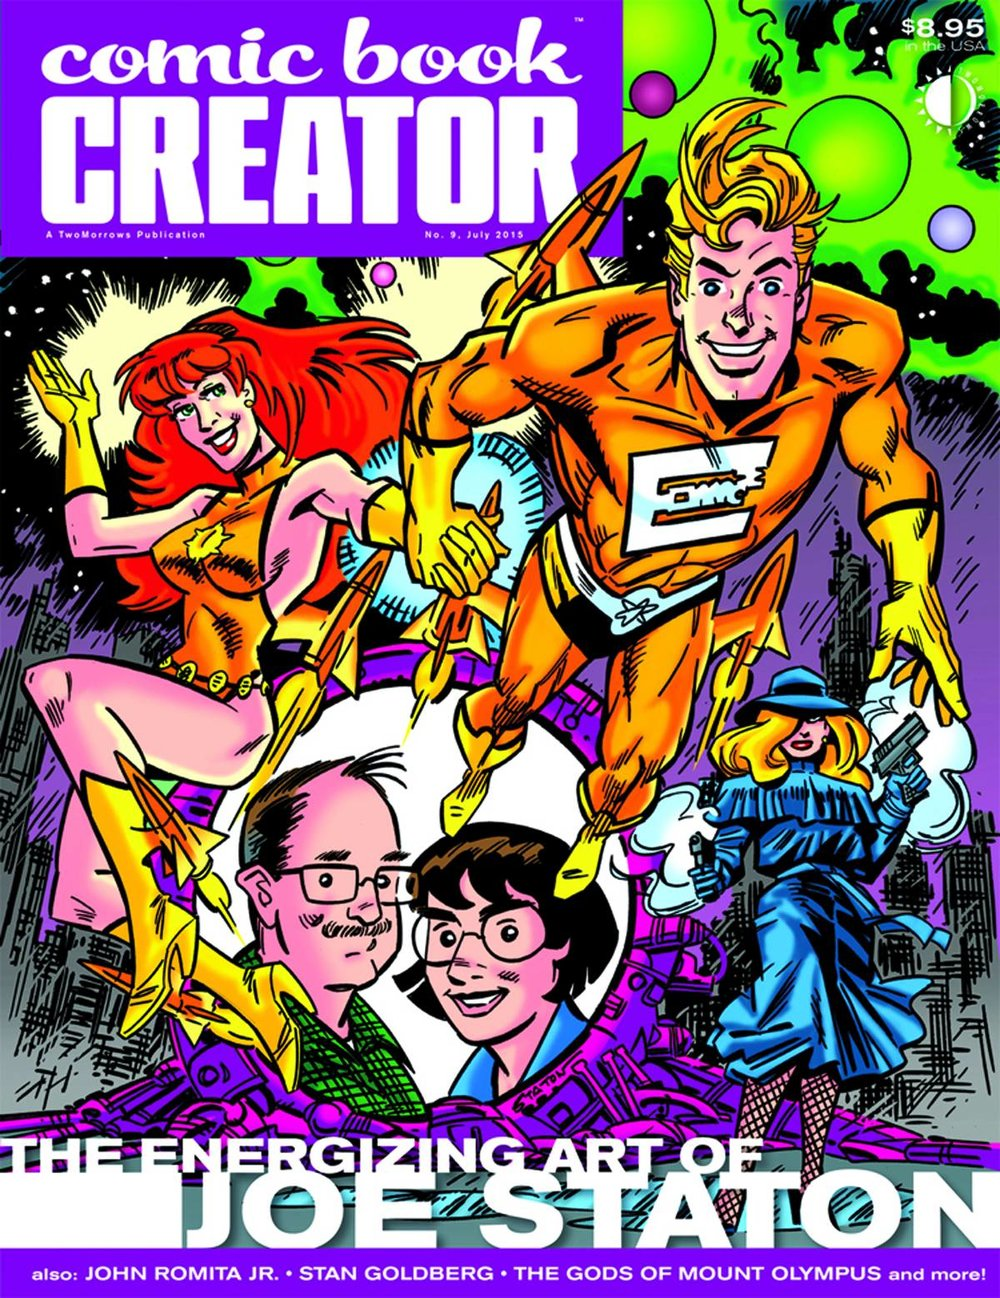 COMIC BOOK CREATOR 9.jpg